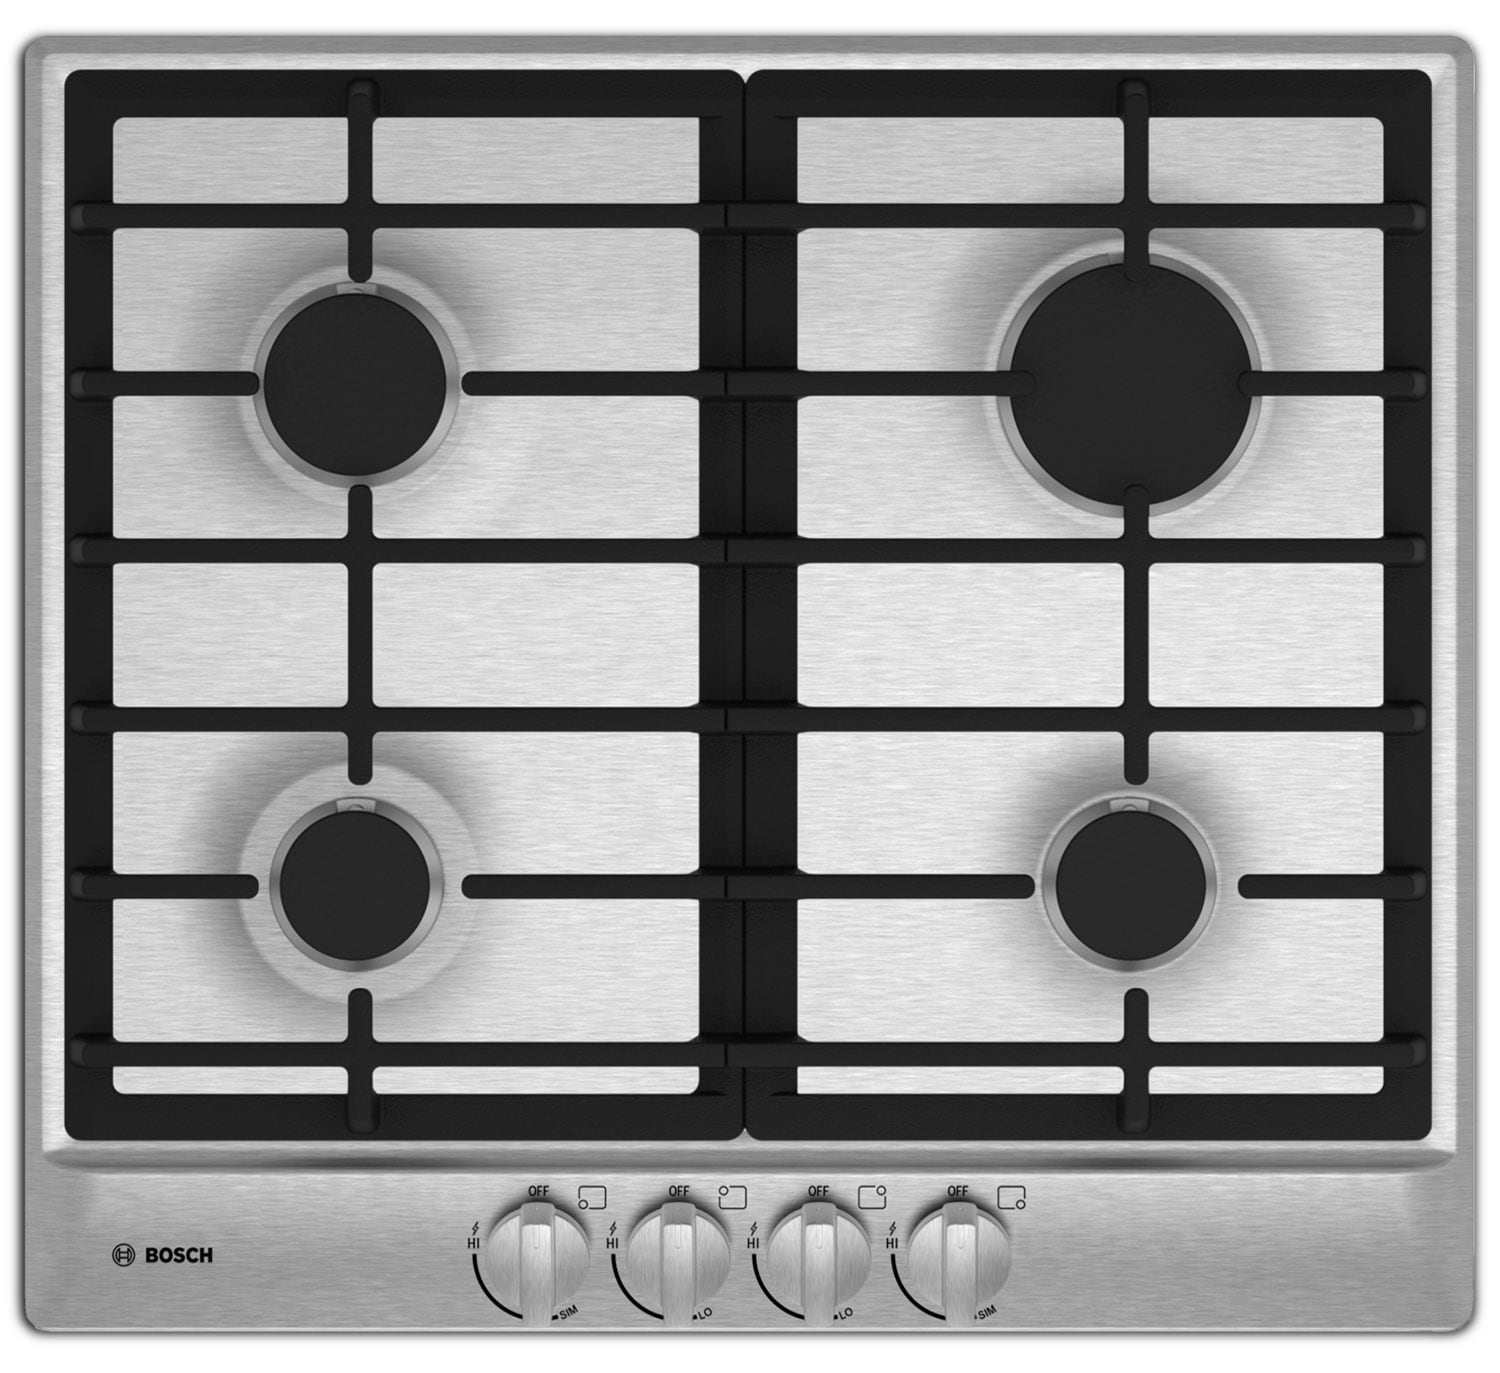 Bosch Stainless Steel Gas Cooktop - NGM5455UC